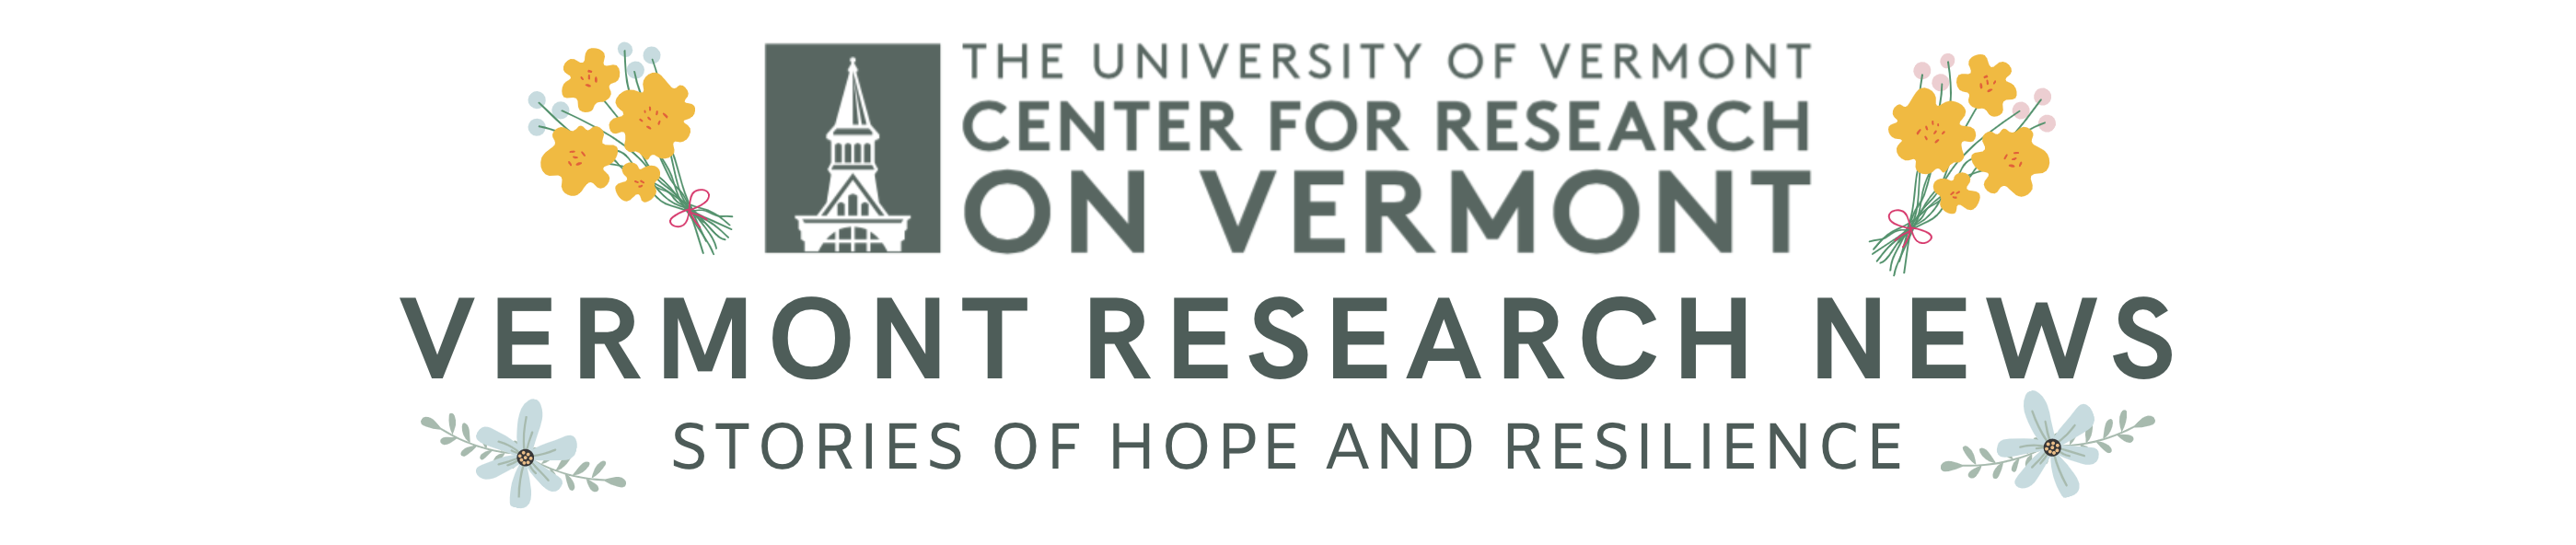 Vermont Research Newsletter: Stories of hope and resilience